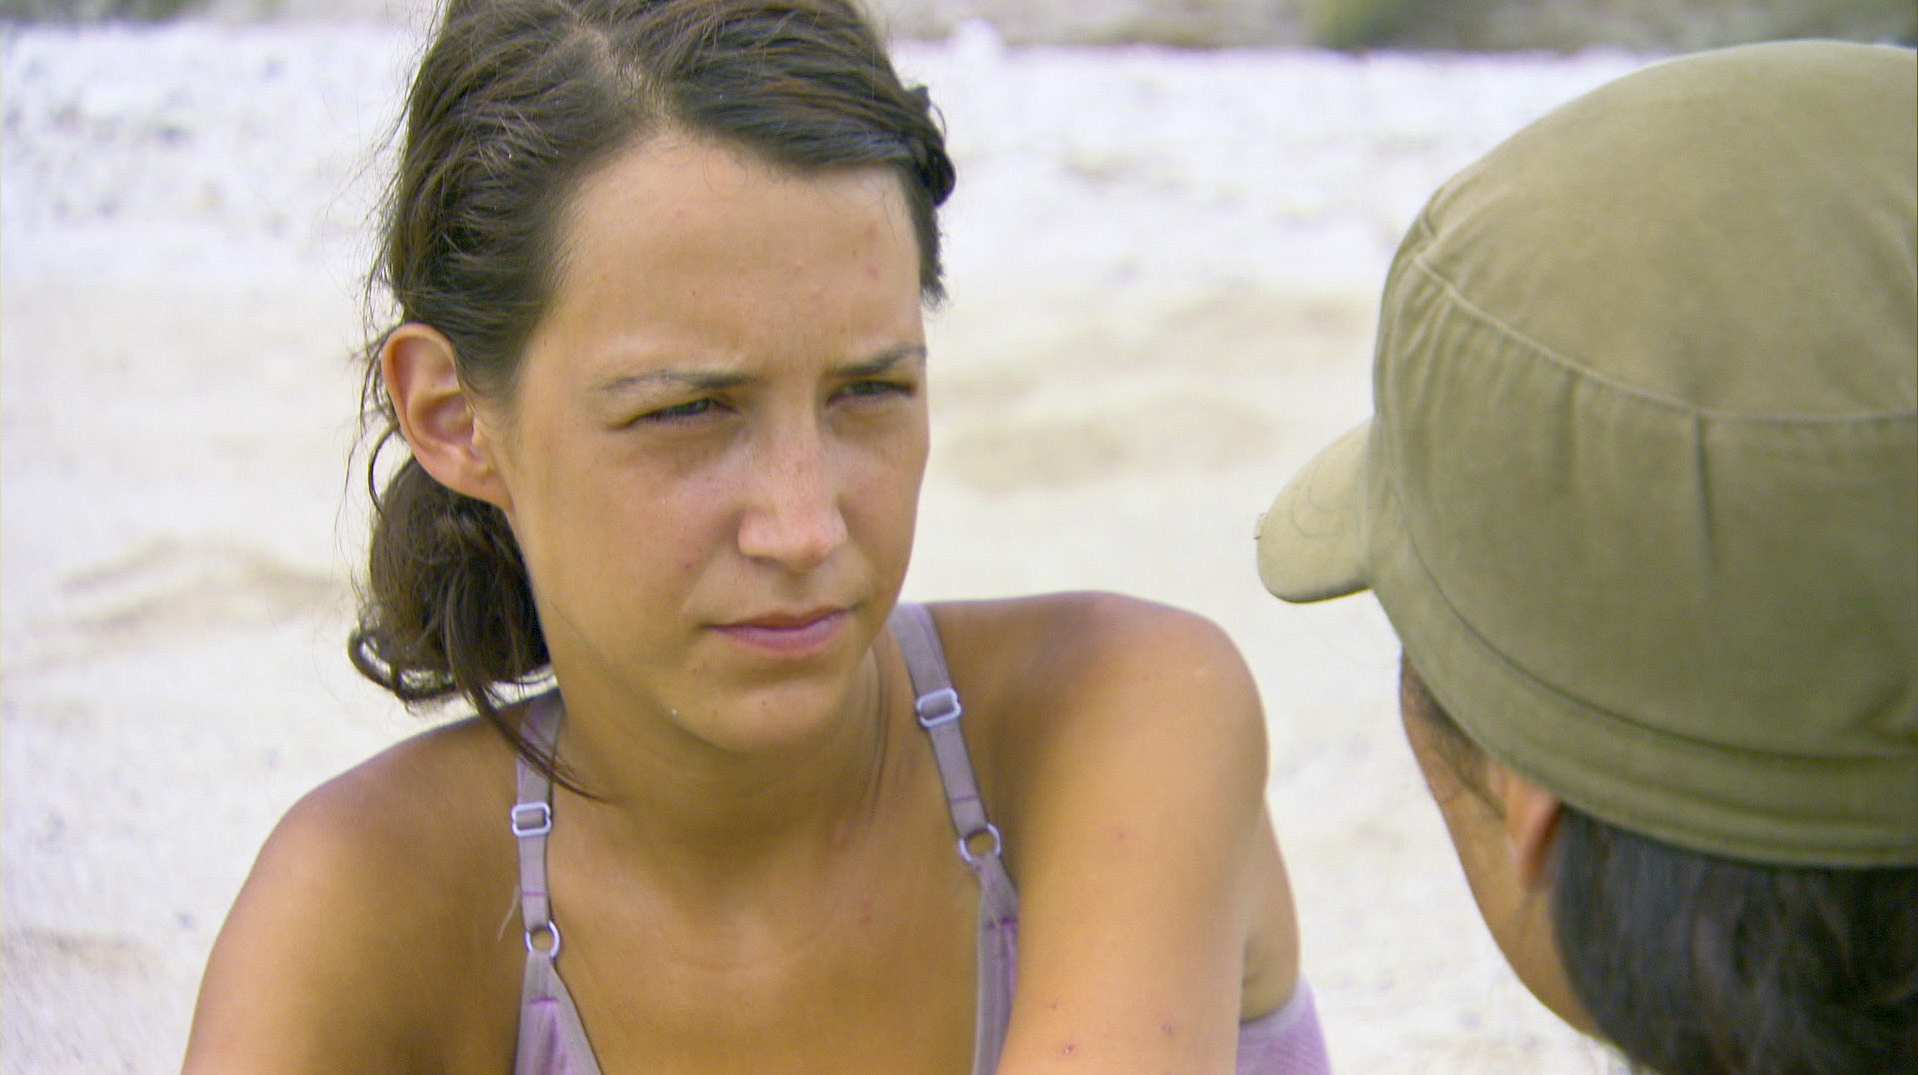 Ciera listens in Season 27 Episode 10